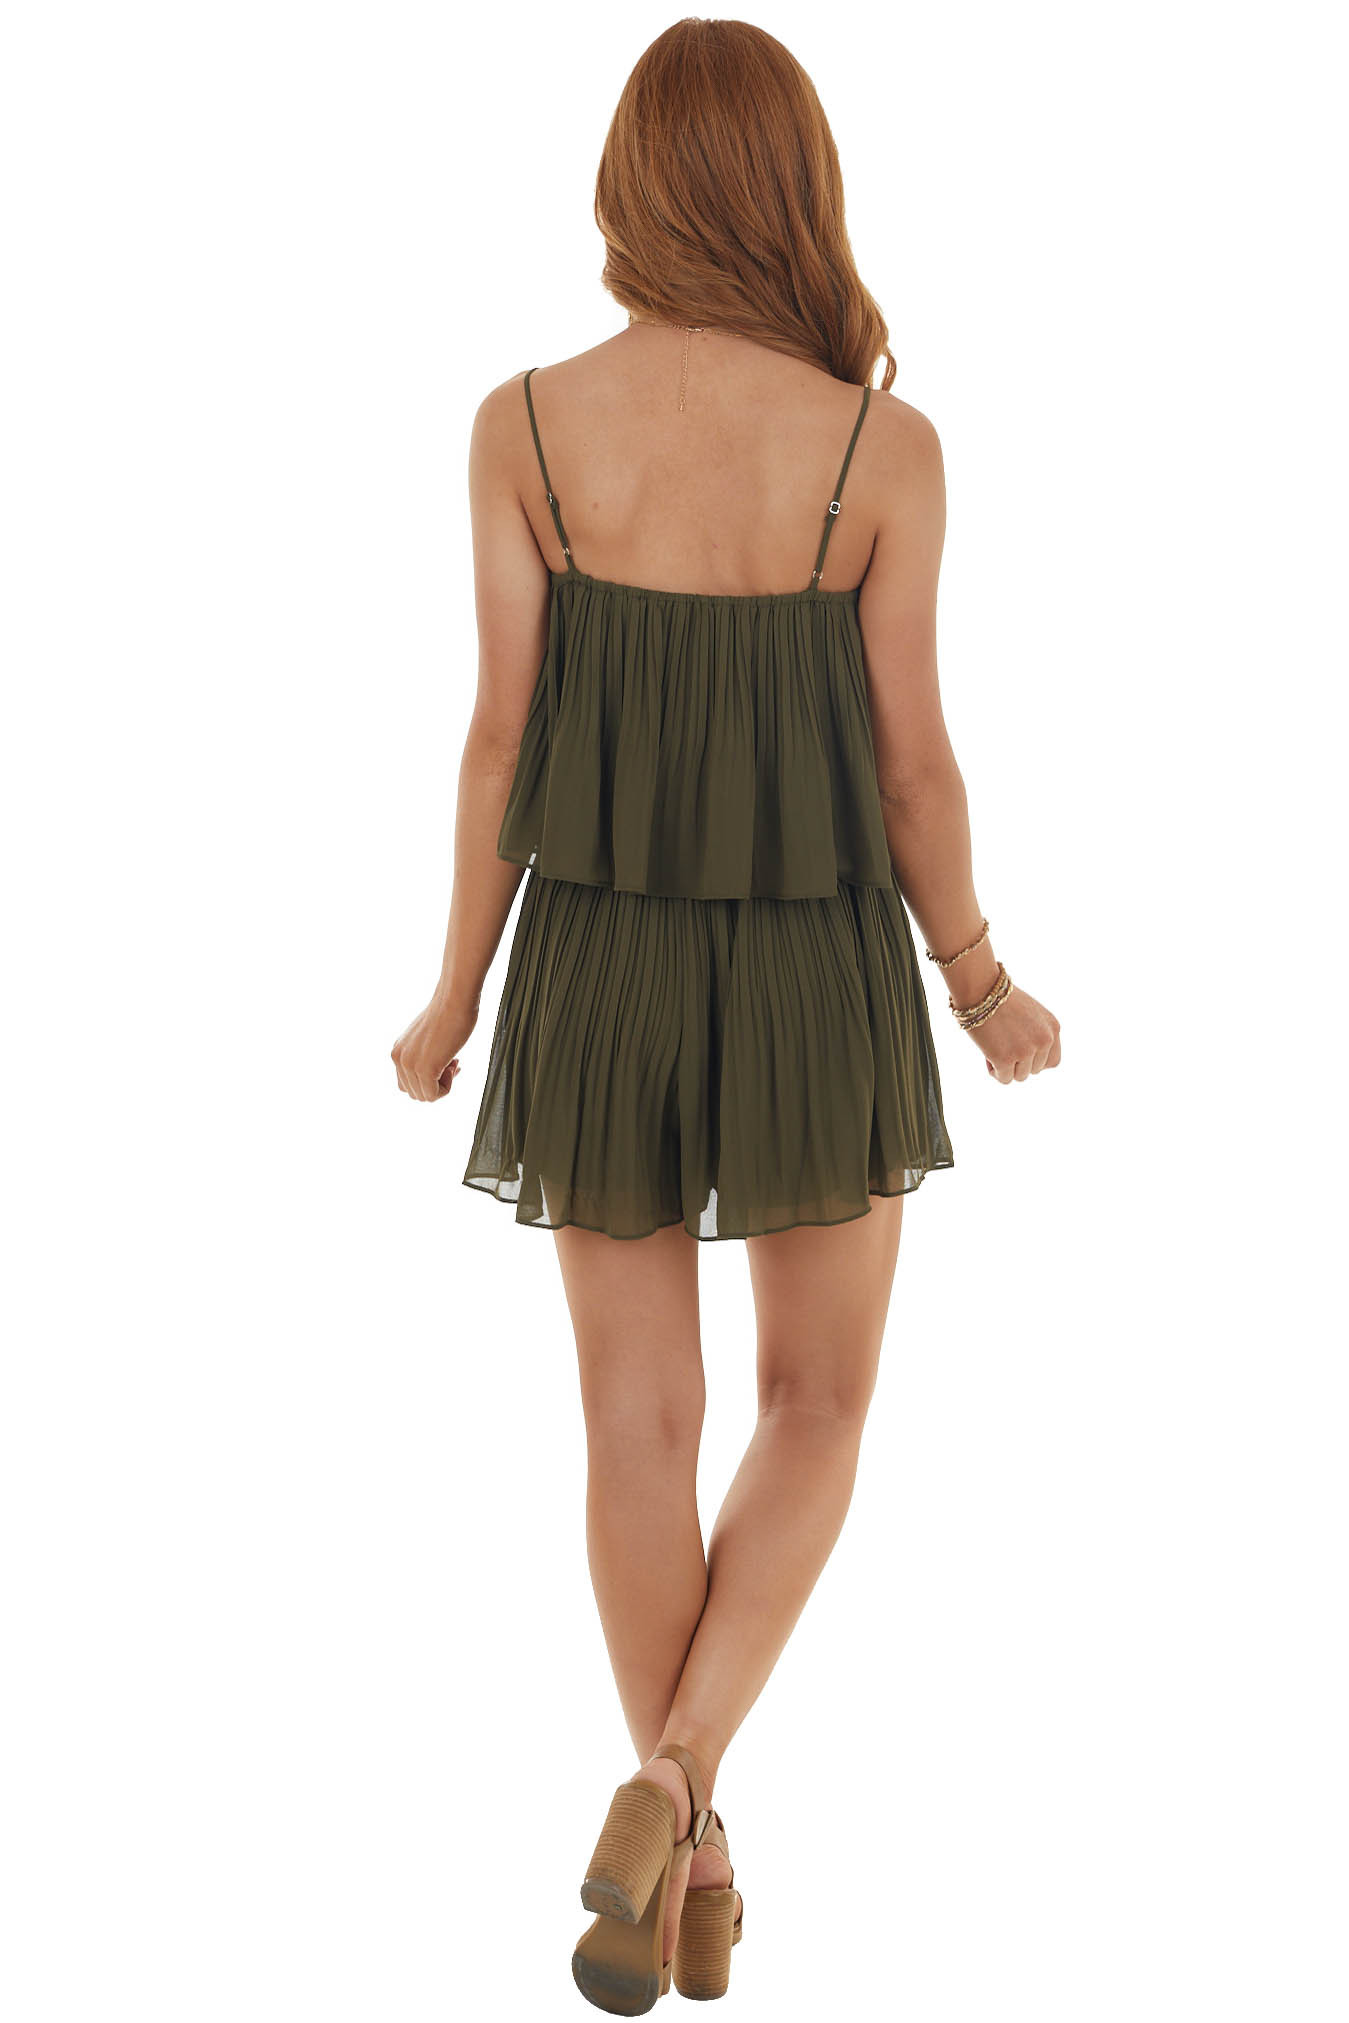 Willow Sleeveless Pleated Overlaying Flowy Fitted Romper